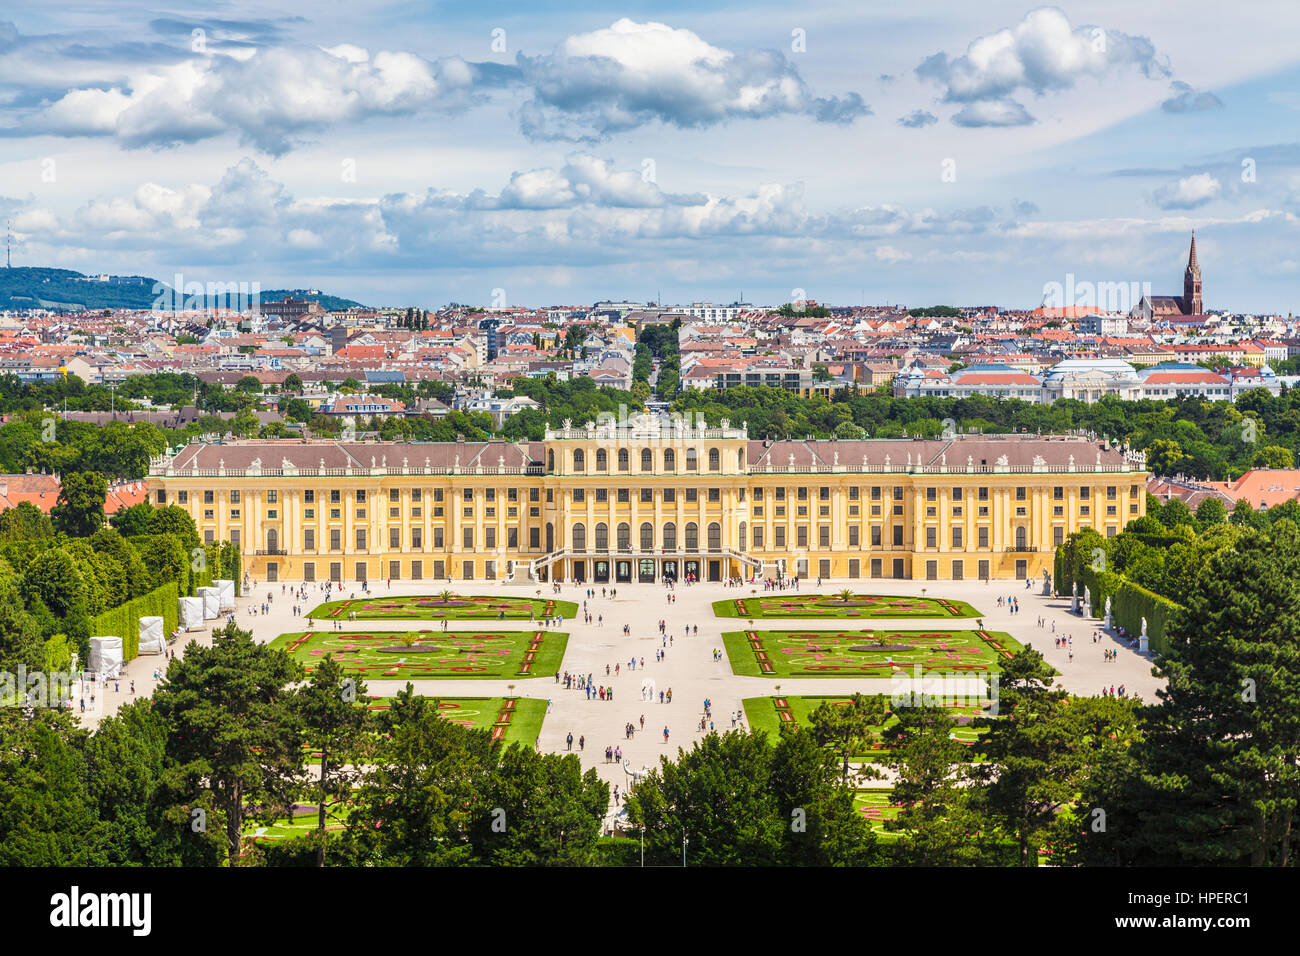 Classic view of famous Schonbrunn Palace with Great Parterre gardens on a beautiful sunny day with blue sky and - Stock Image